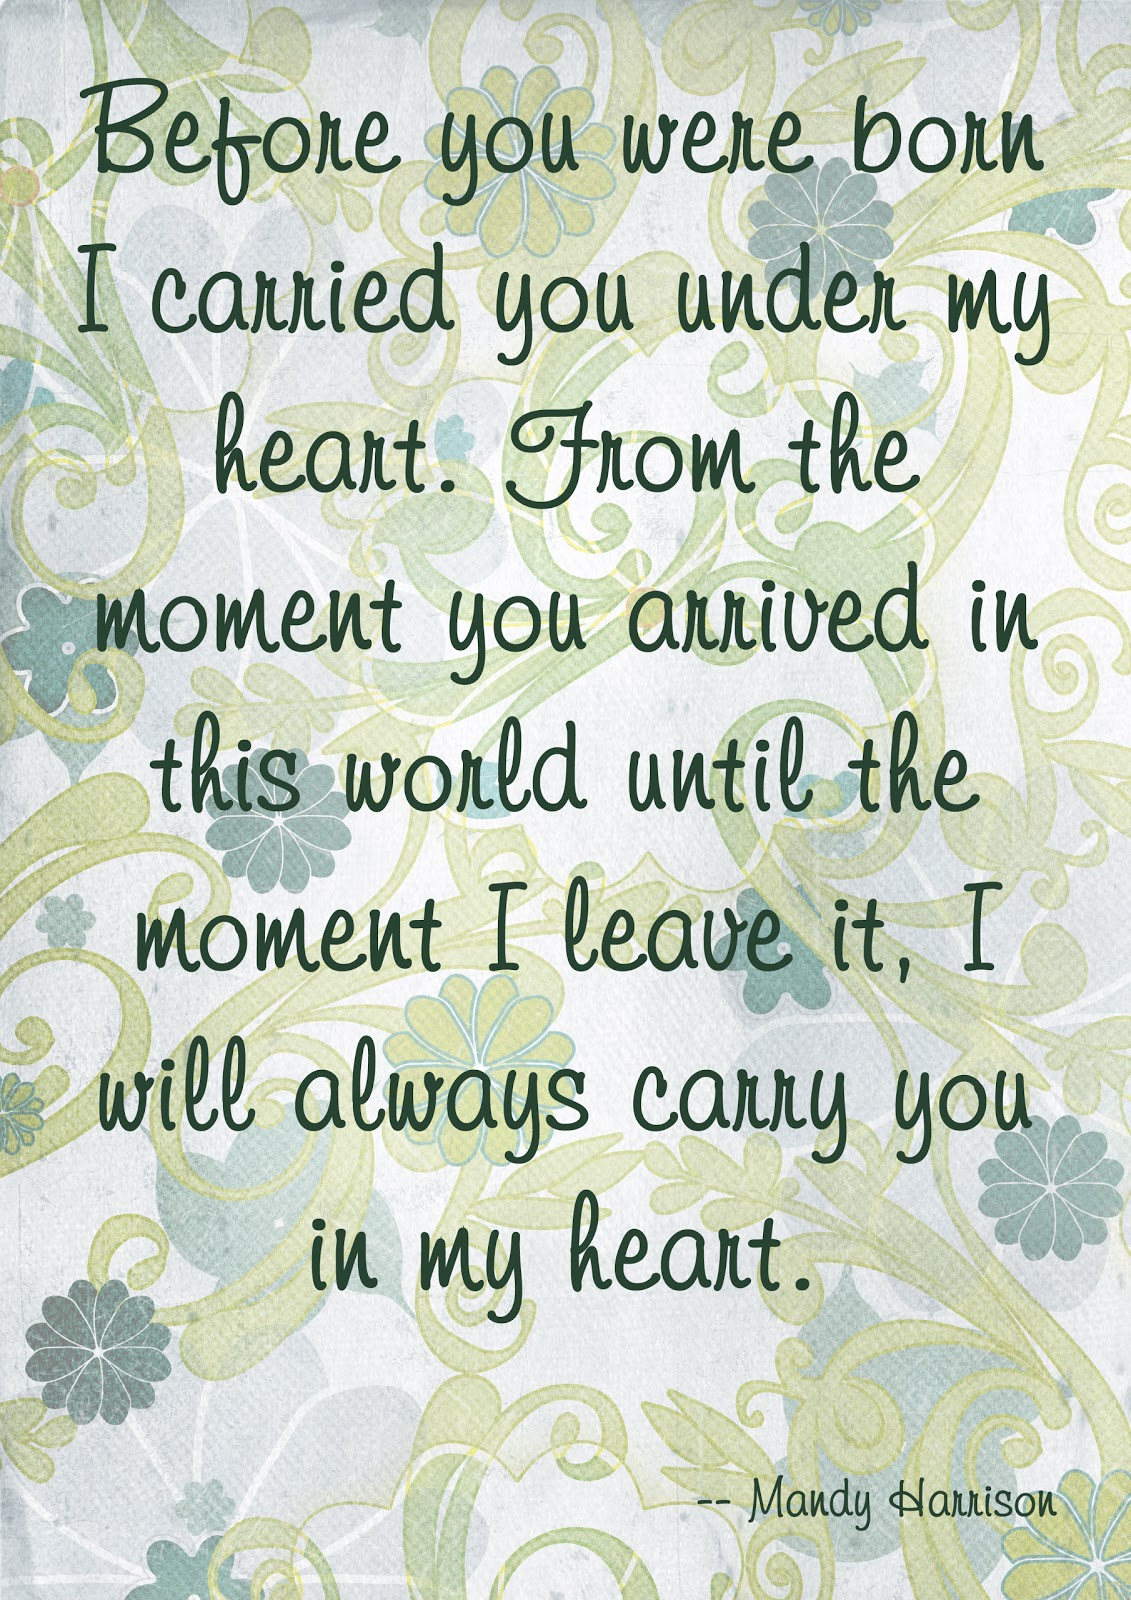 I Love You Son Quotes From Mom : that pretty much sums up how much i love my little man h i am always ...